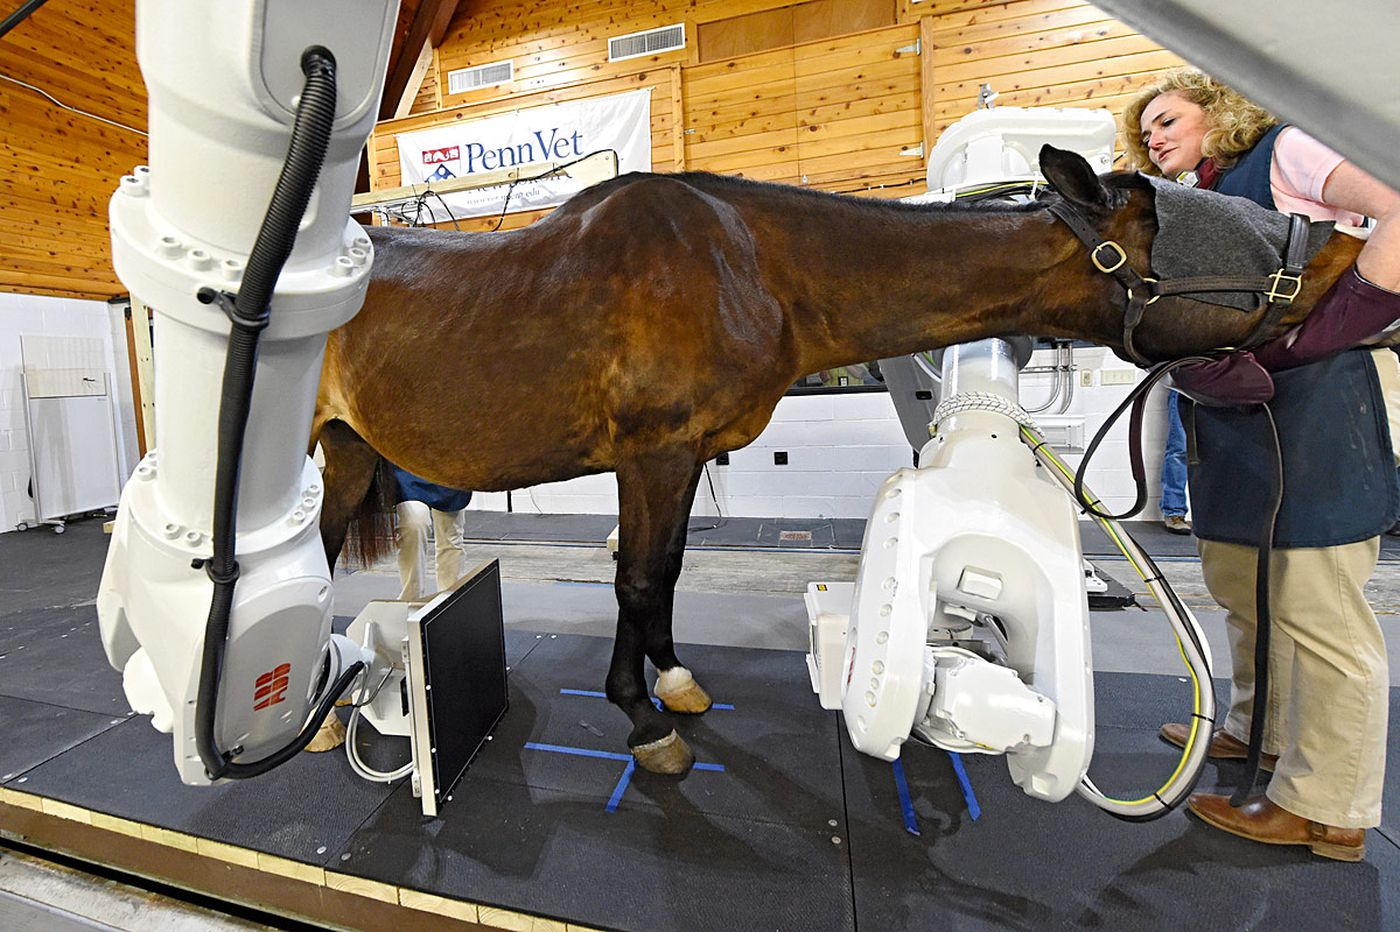 Just out of the gate: A CT scanner fit for a horse